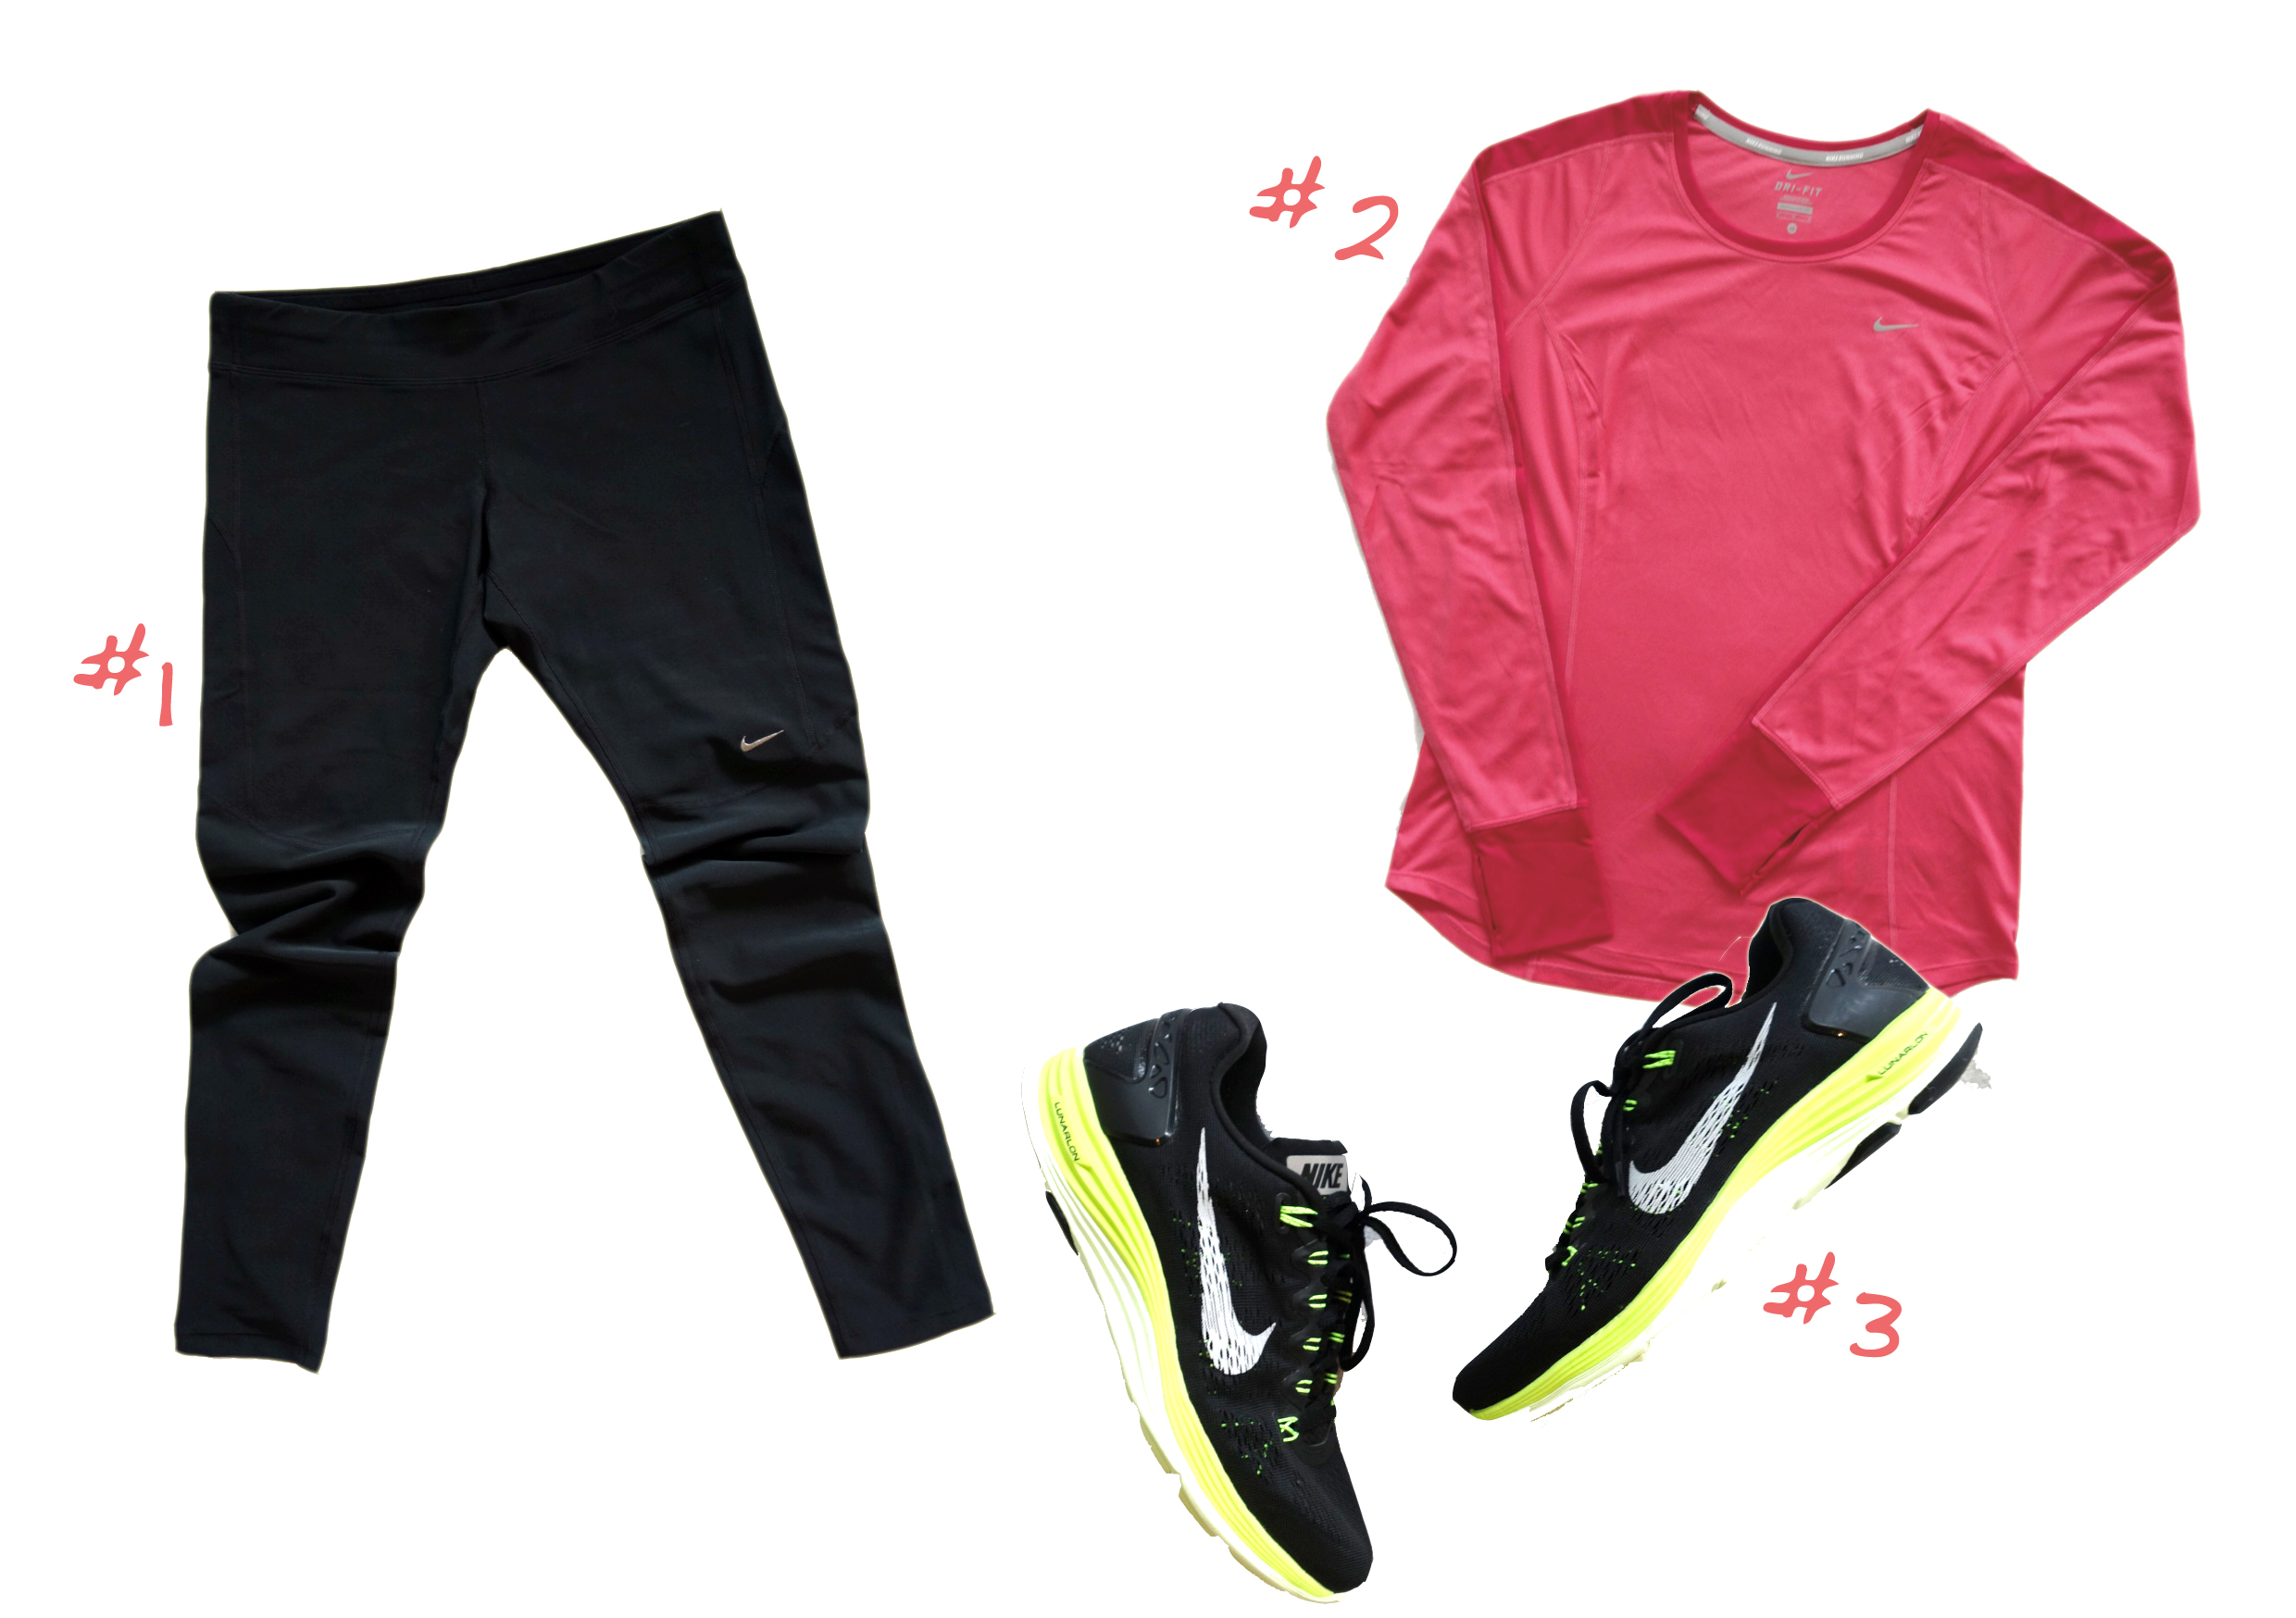 Nike-Laufen-Running-the-Daily-Outfit-thexed-#10